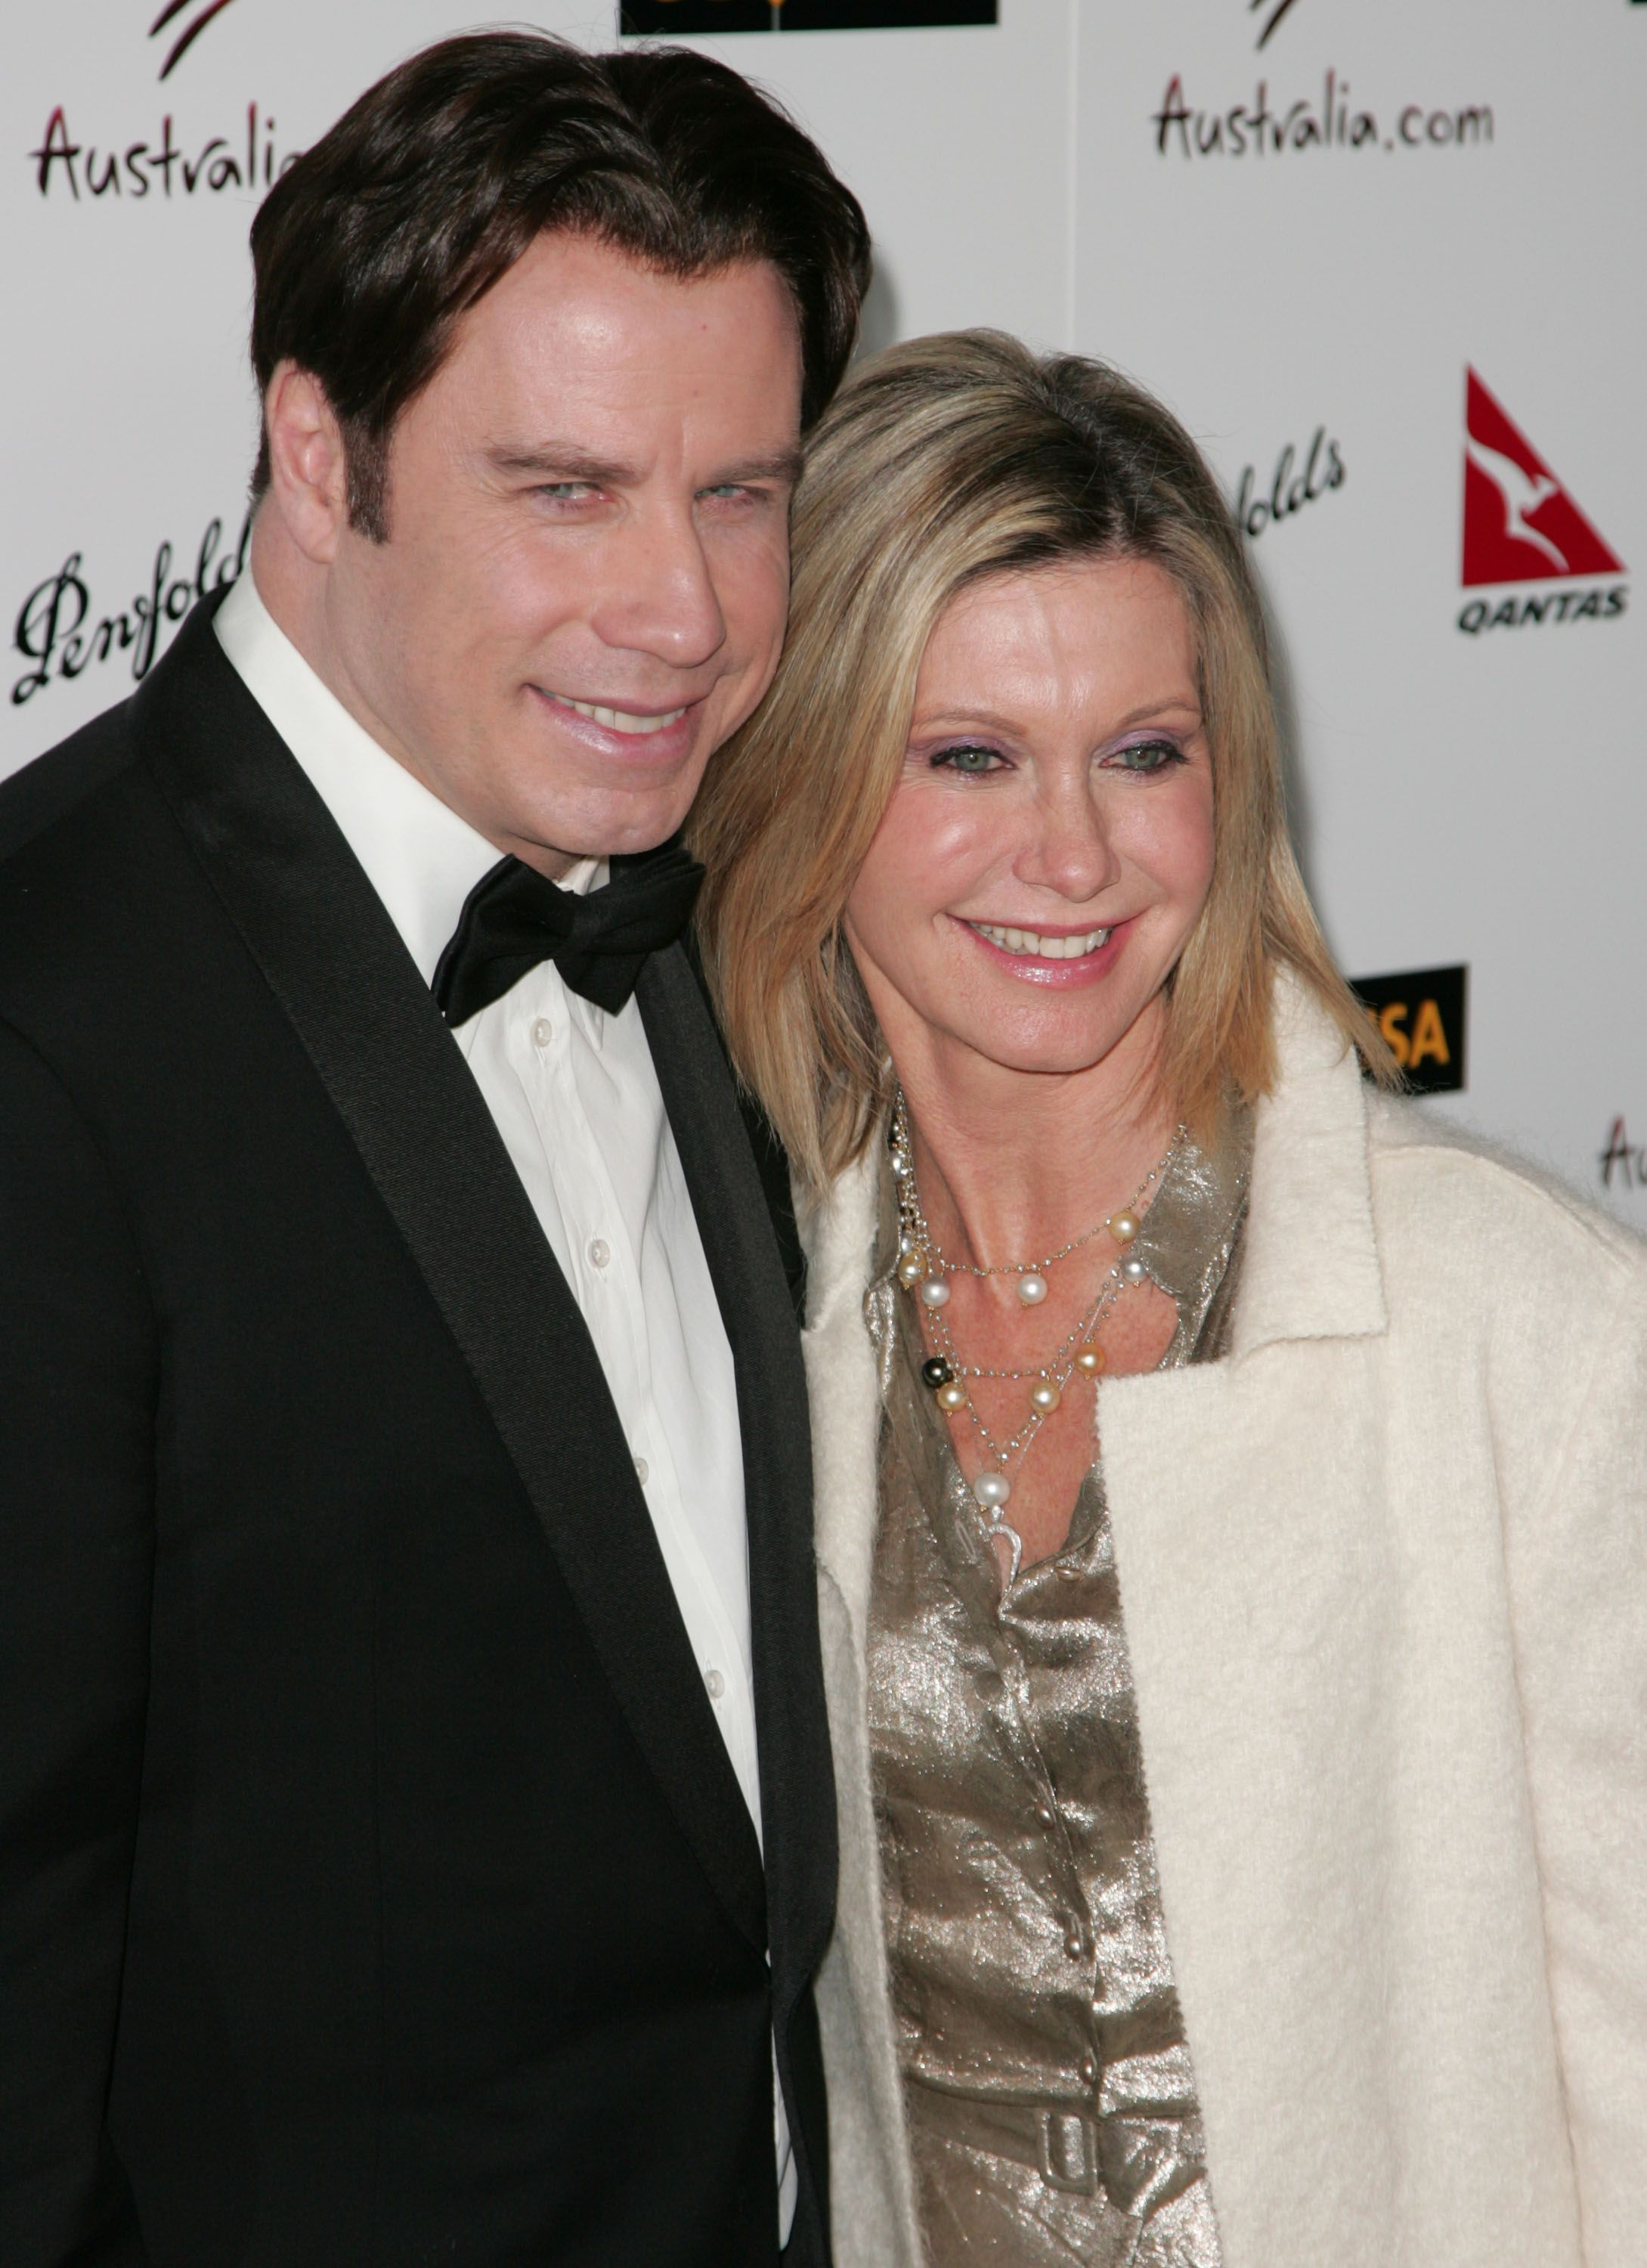 John Travolta and Olivia Newton-John during the G'DAY USA Australia.com Black Tie Gala held at the Hollywood and Highland Grand Ballroom on January 19, 2008 in Hollywood, California. | Source: Getty Images